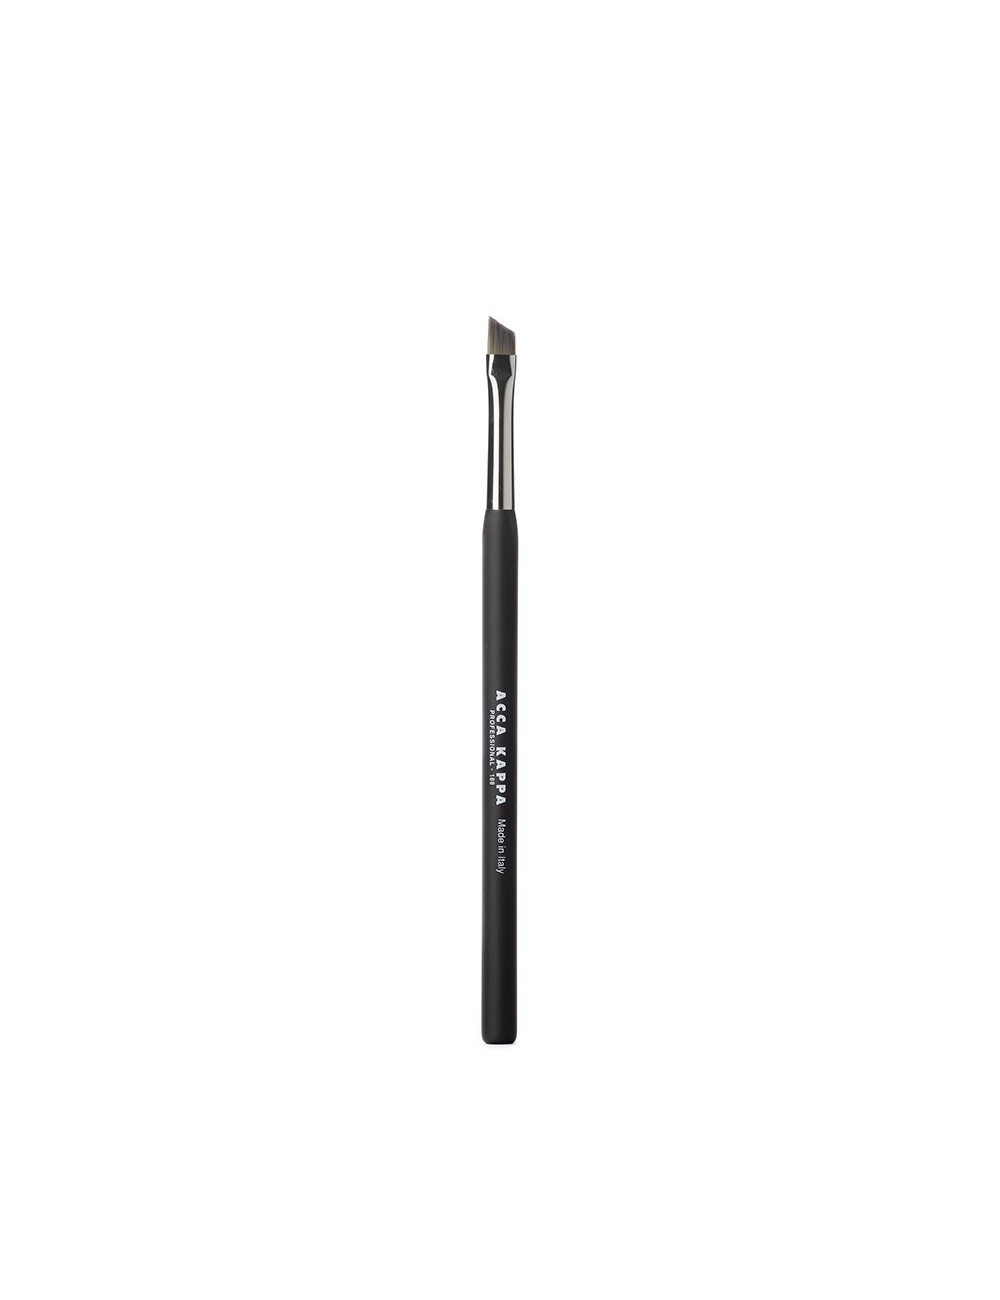 GLAM FACE - PRO MAKEUP CASE - PROFUSION COSMETICS